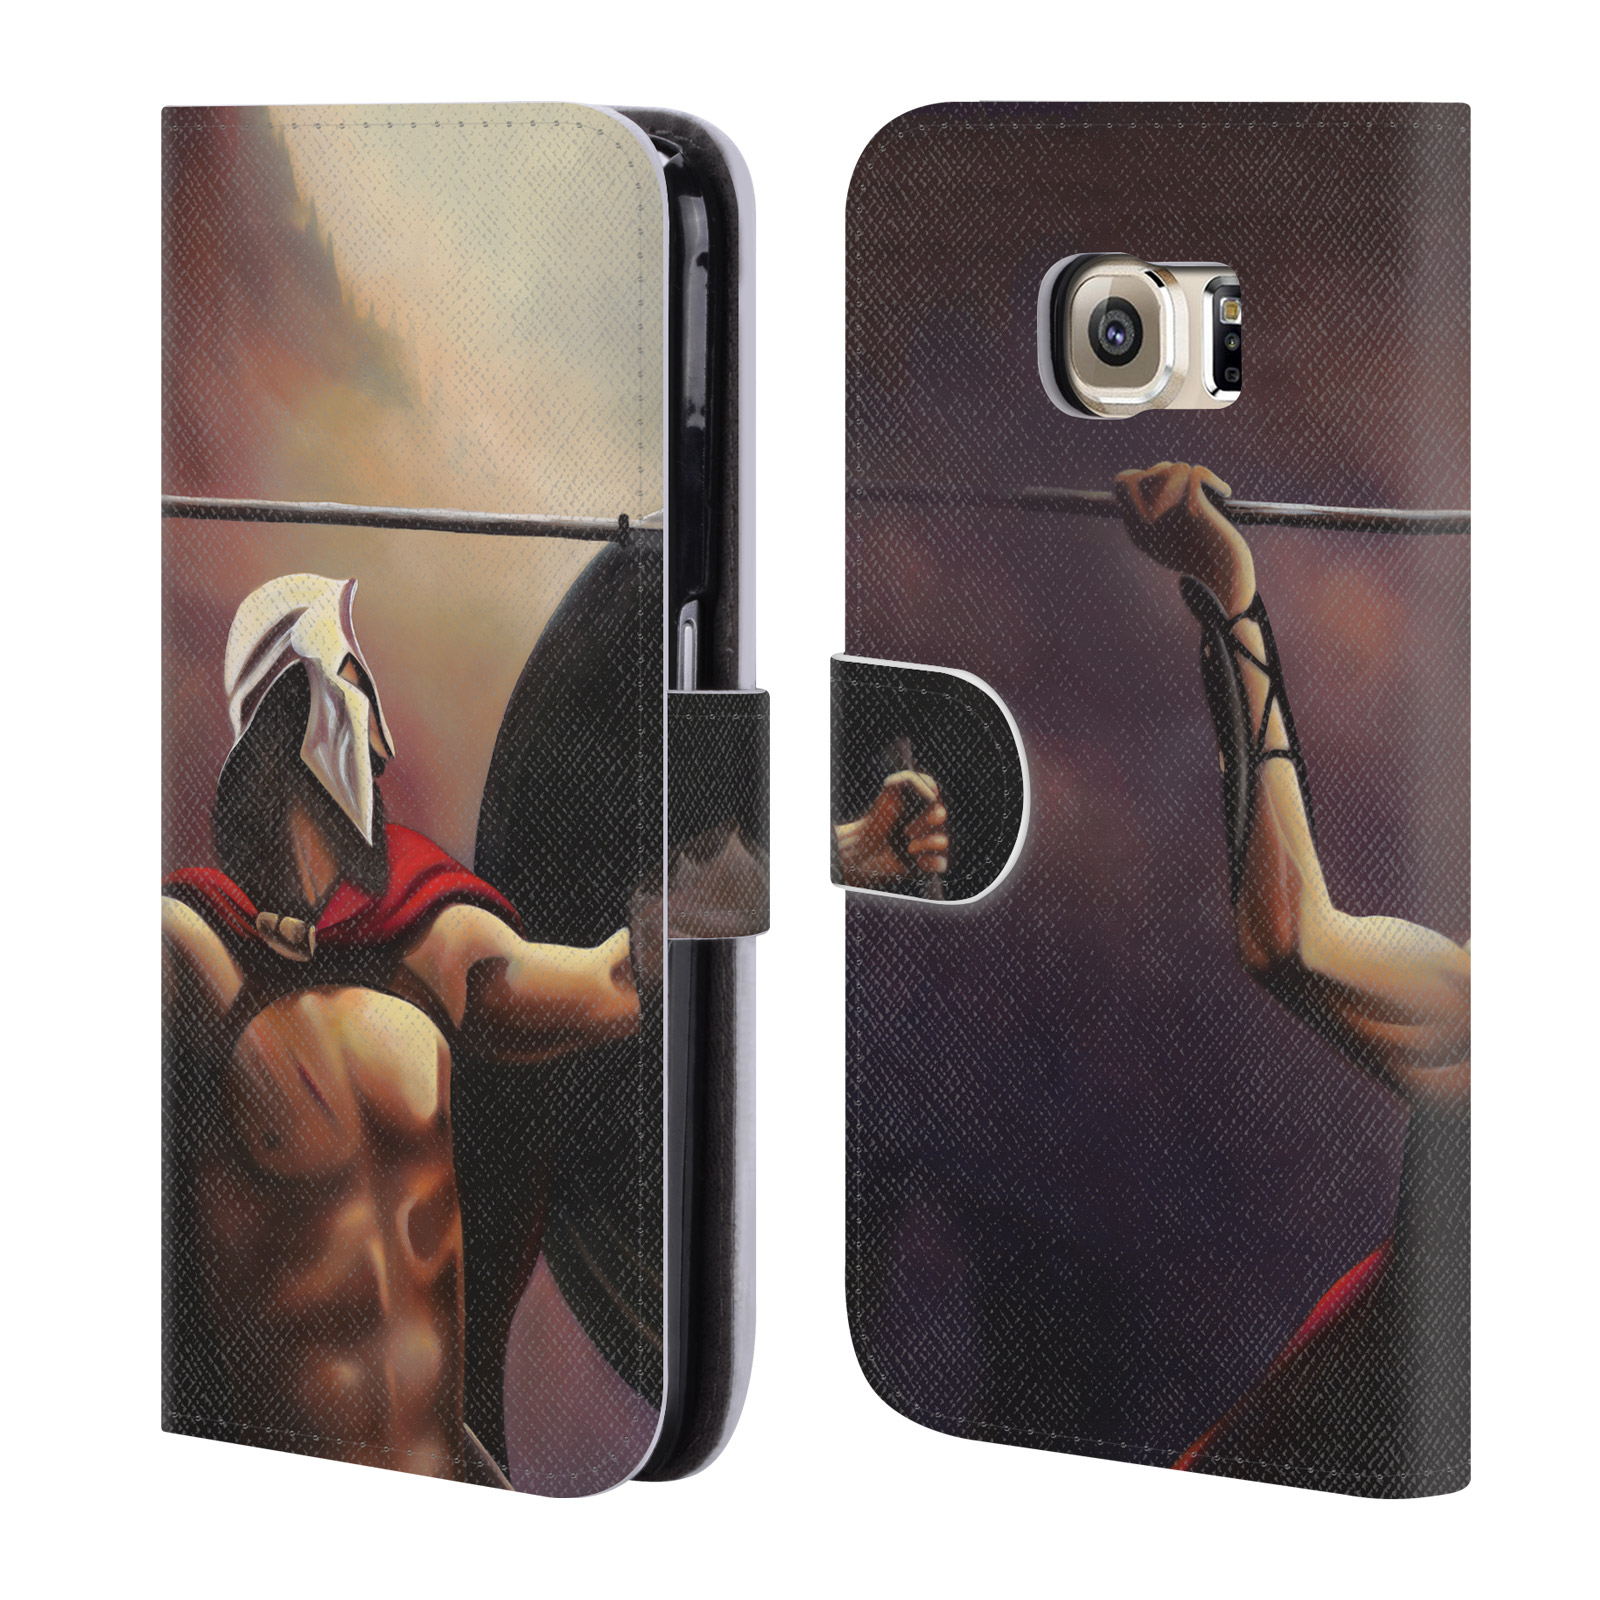 OFFICIAL-GENO-PEOPLES-ART-LIFE-LEATHER-BOOK-WALLET-CASE-FOR-SAMSUNG-PHONES-1